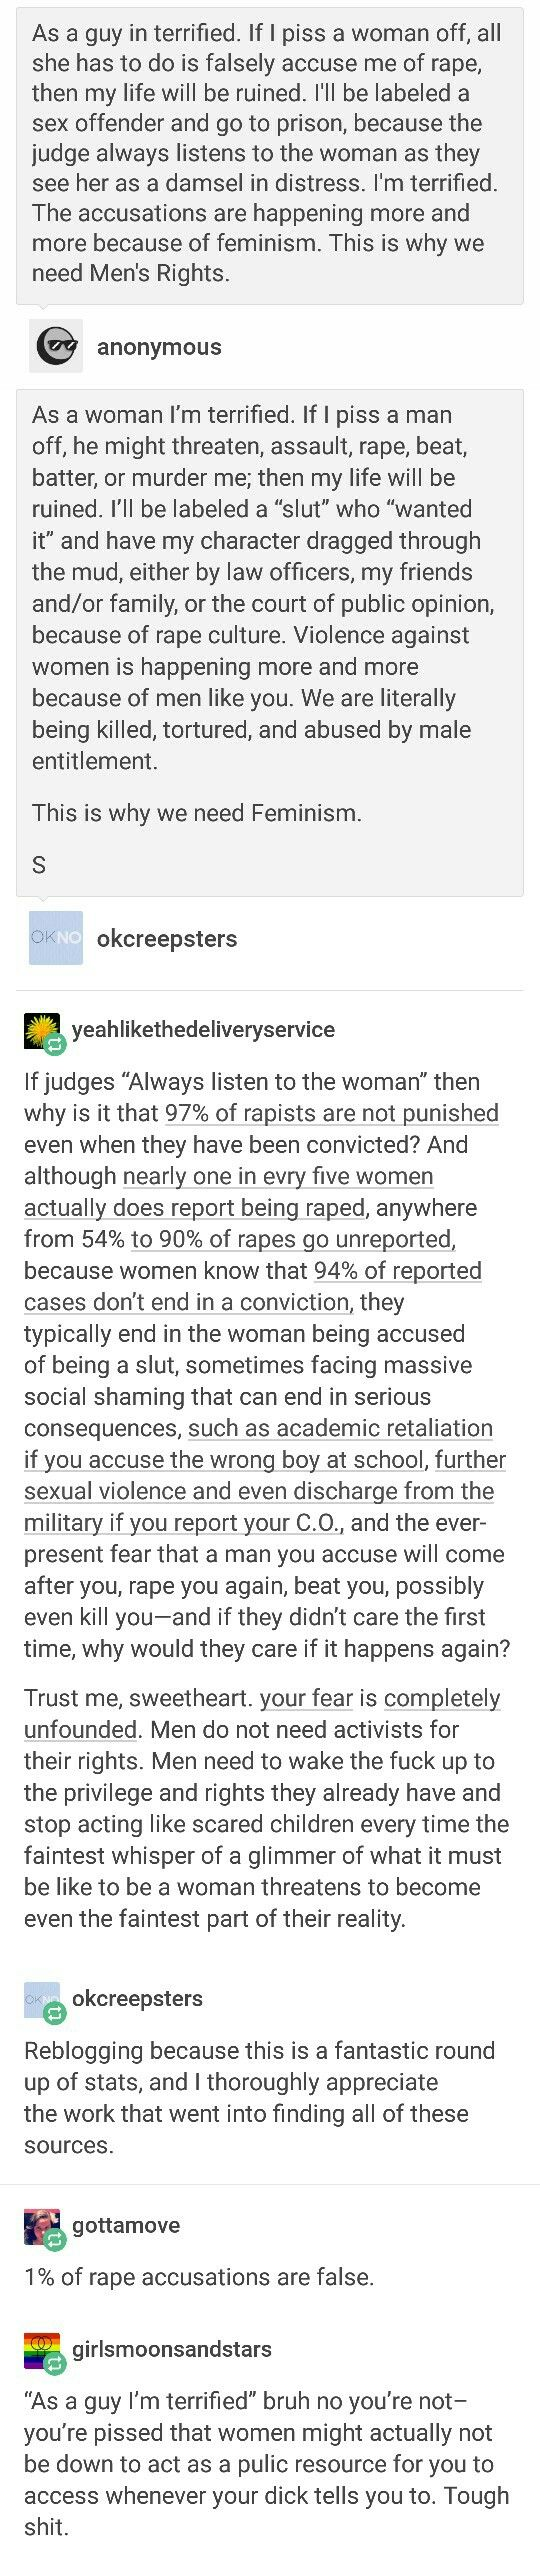 to clarify- men don't need activists, they need feminists, because feminism also focuses on fixing how men are told they can't be victims of sexual violence. tl;dr- we don't need activists for what that guy said, but that doesn't mean men don't need feminism